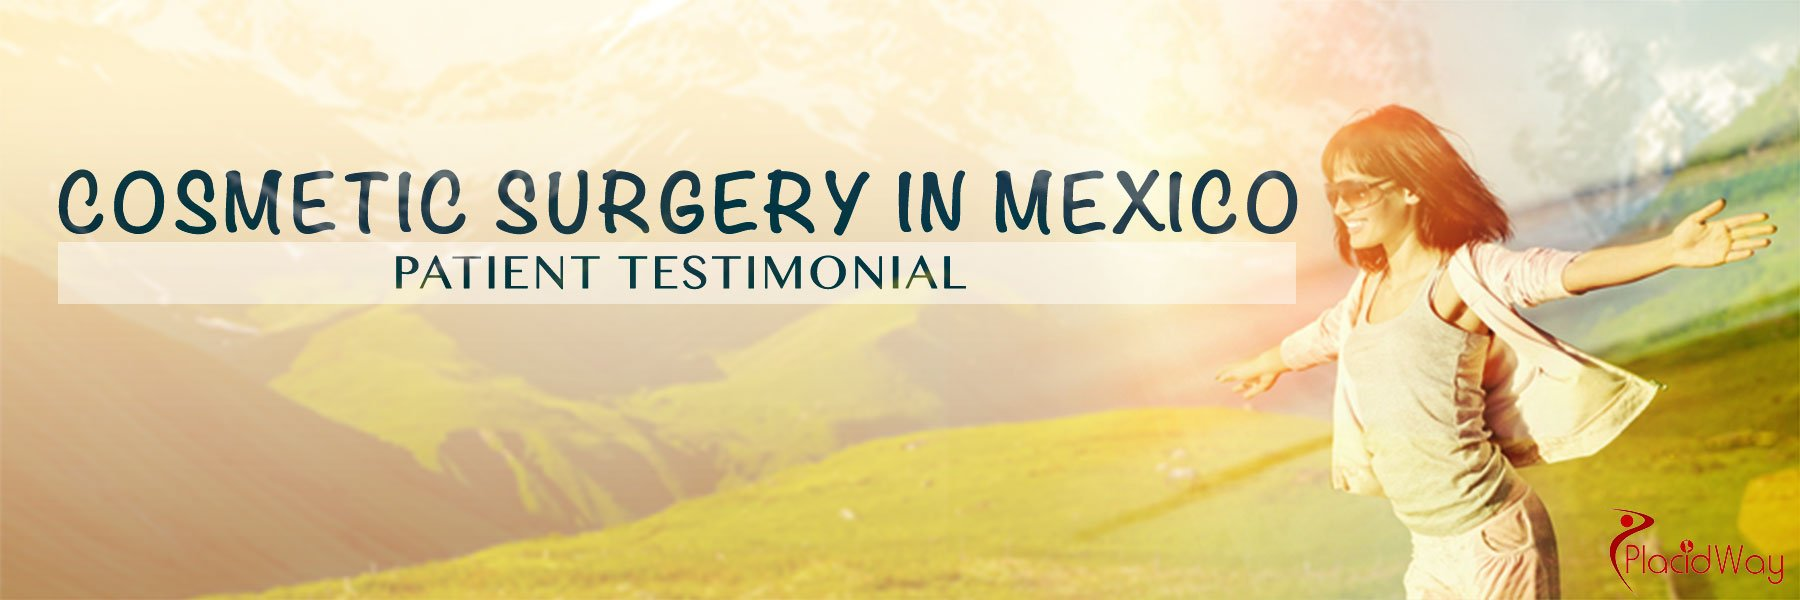 Cosmetic Surgery Mexico Patient Testimonial